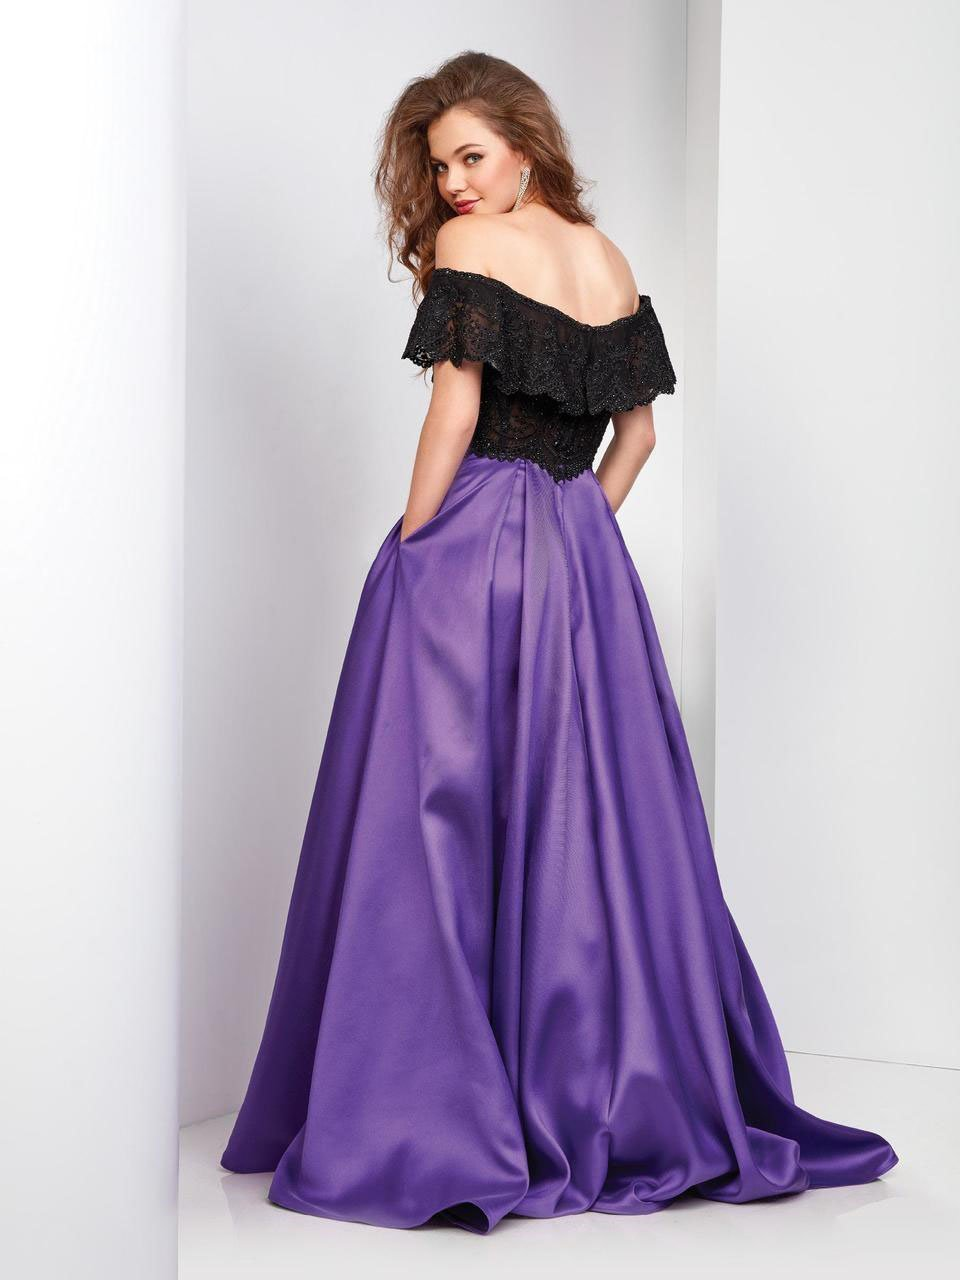 Clarisse - 3582 Off Shoulder Lace Pleated Gown in Black and Purple